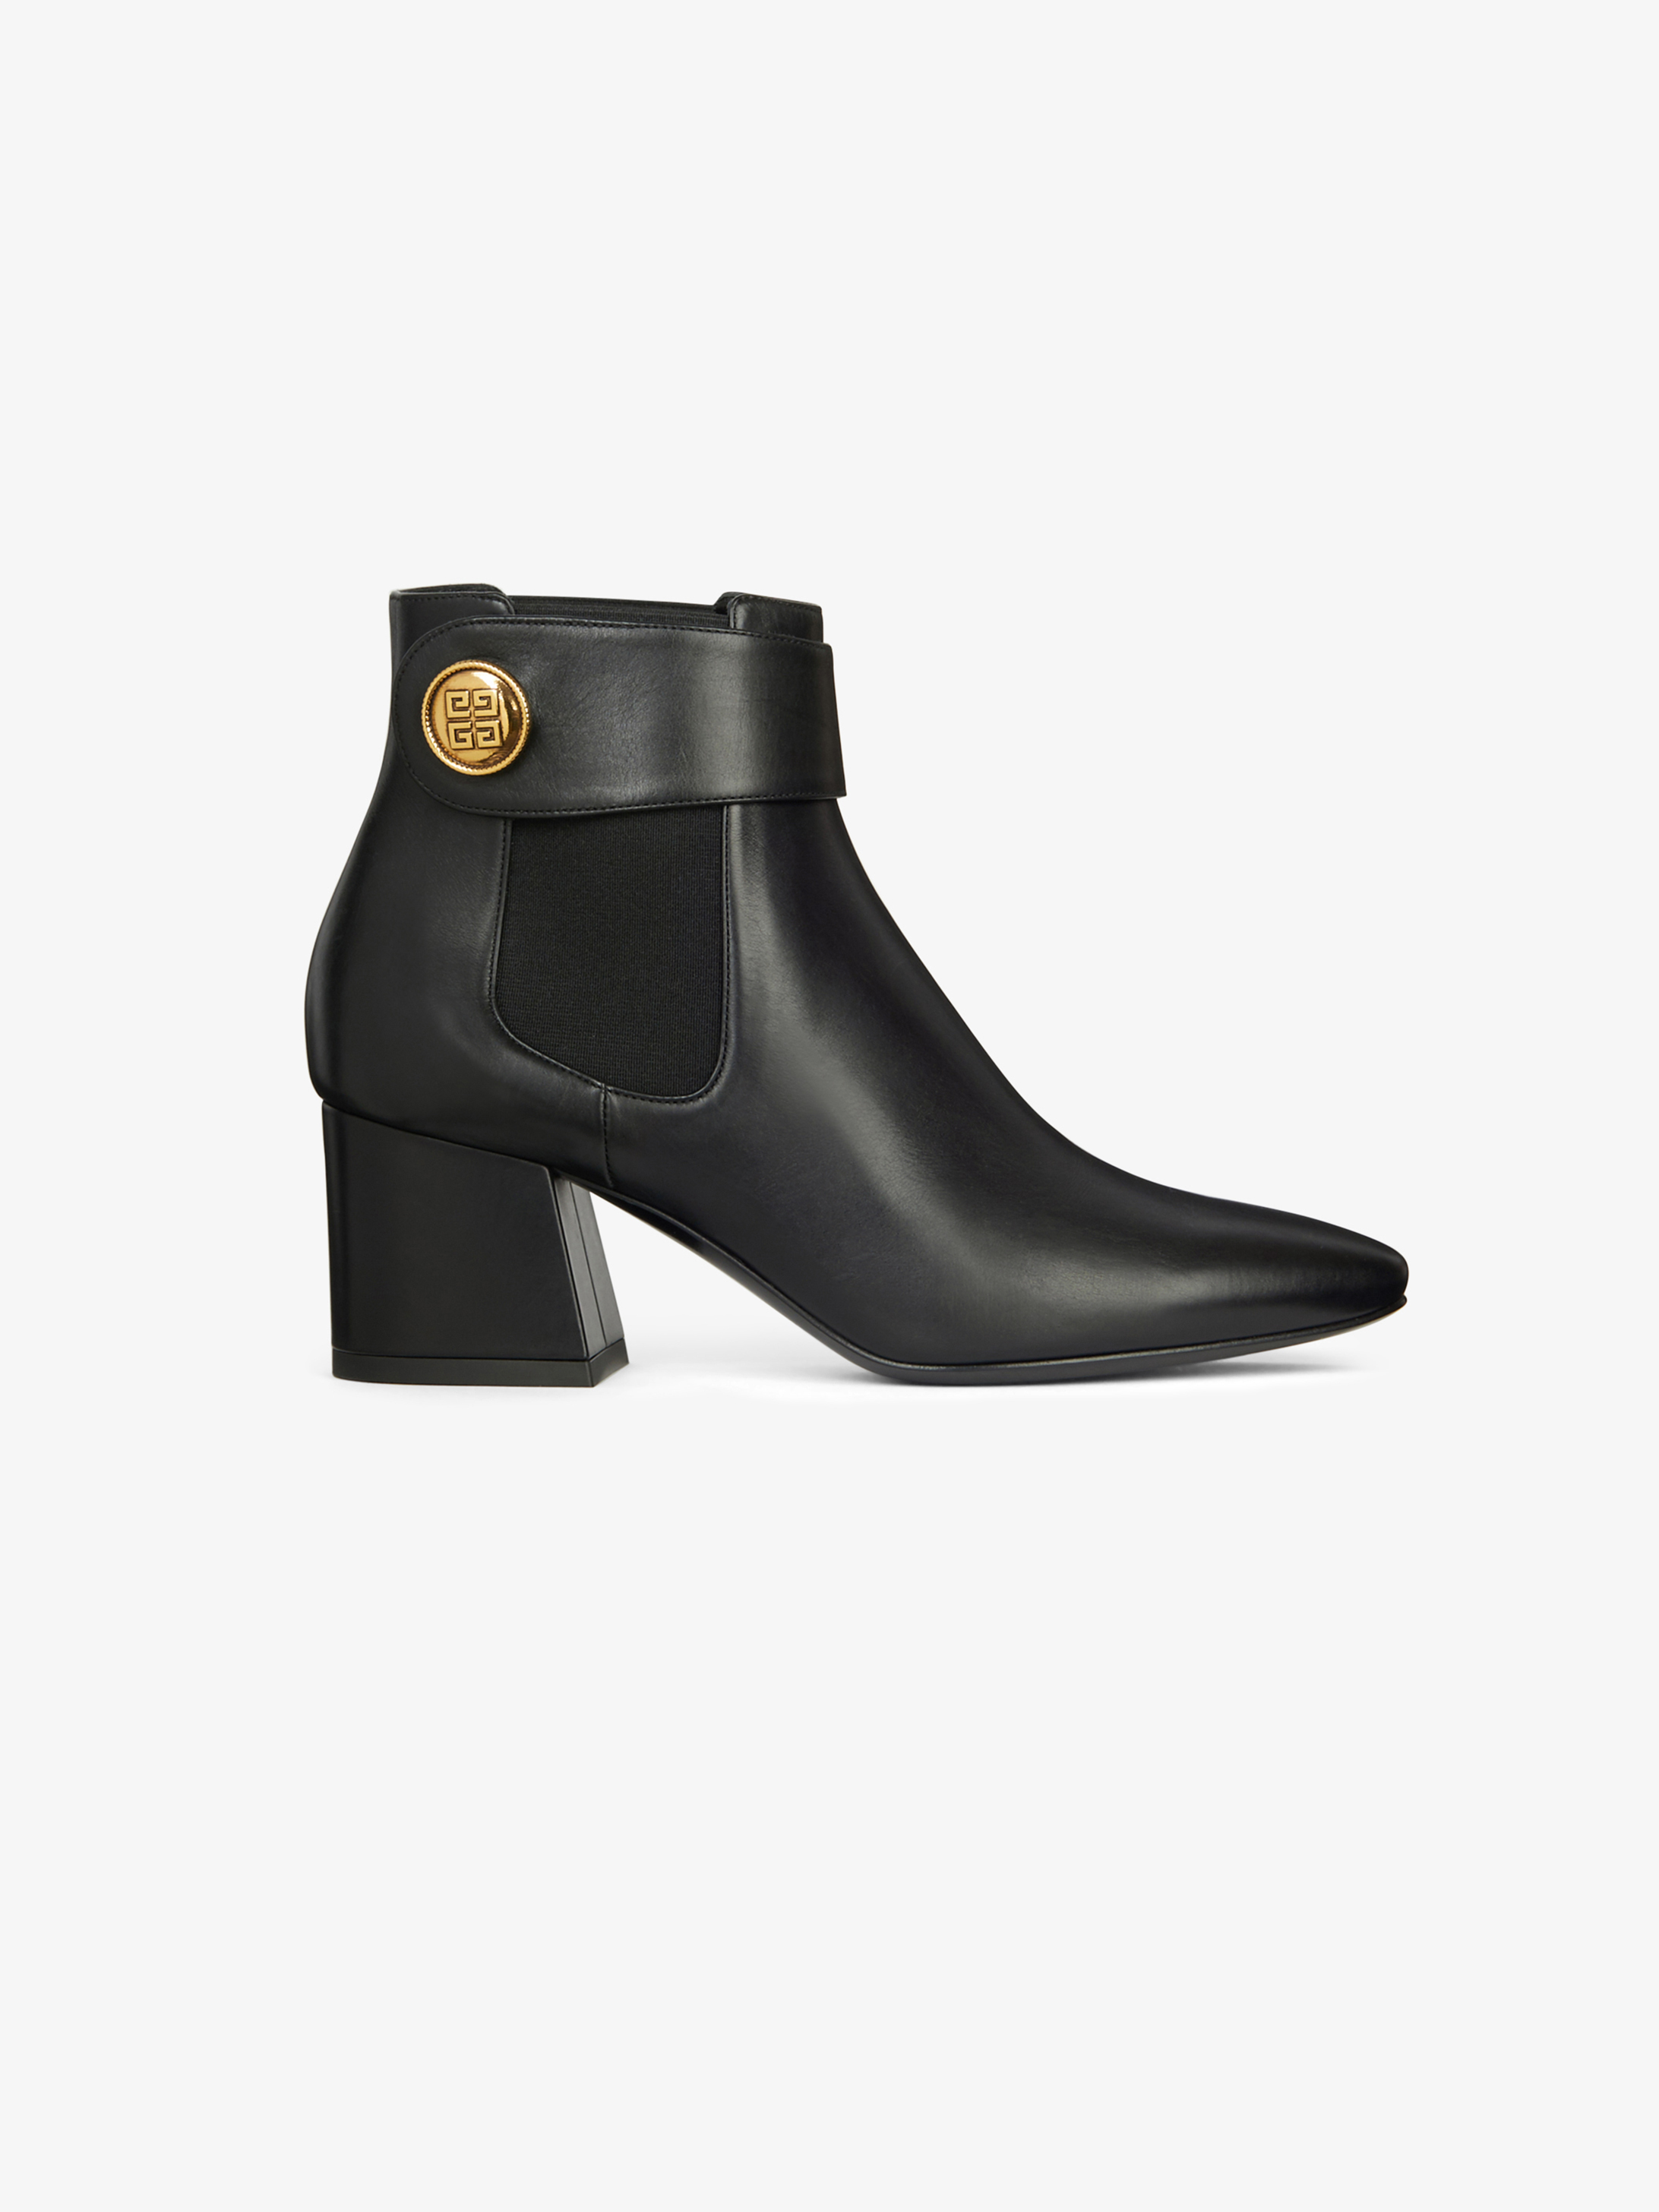 Chelsea boots charm with fancy buttons